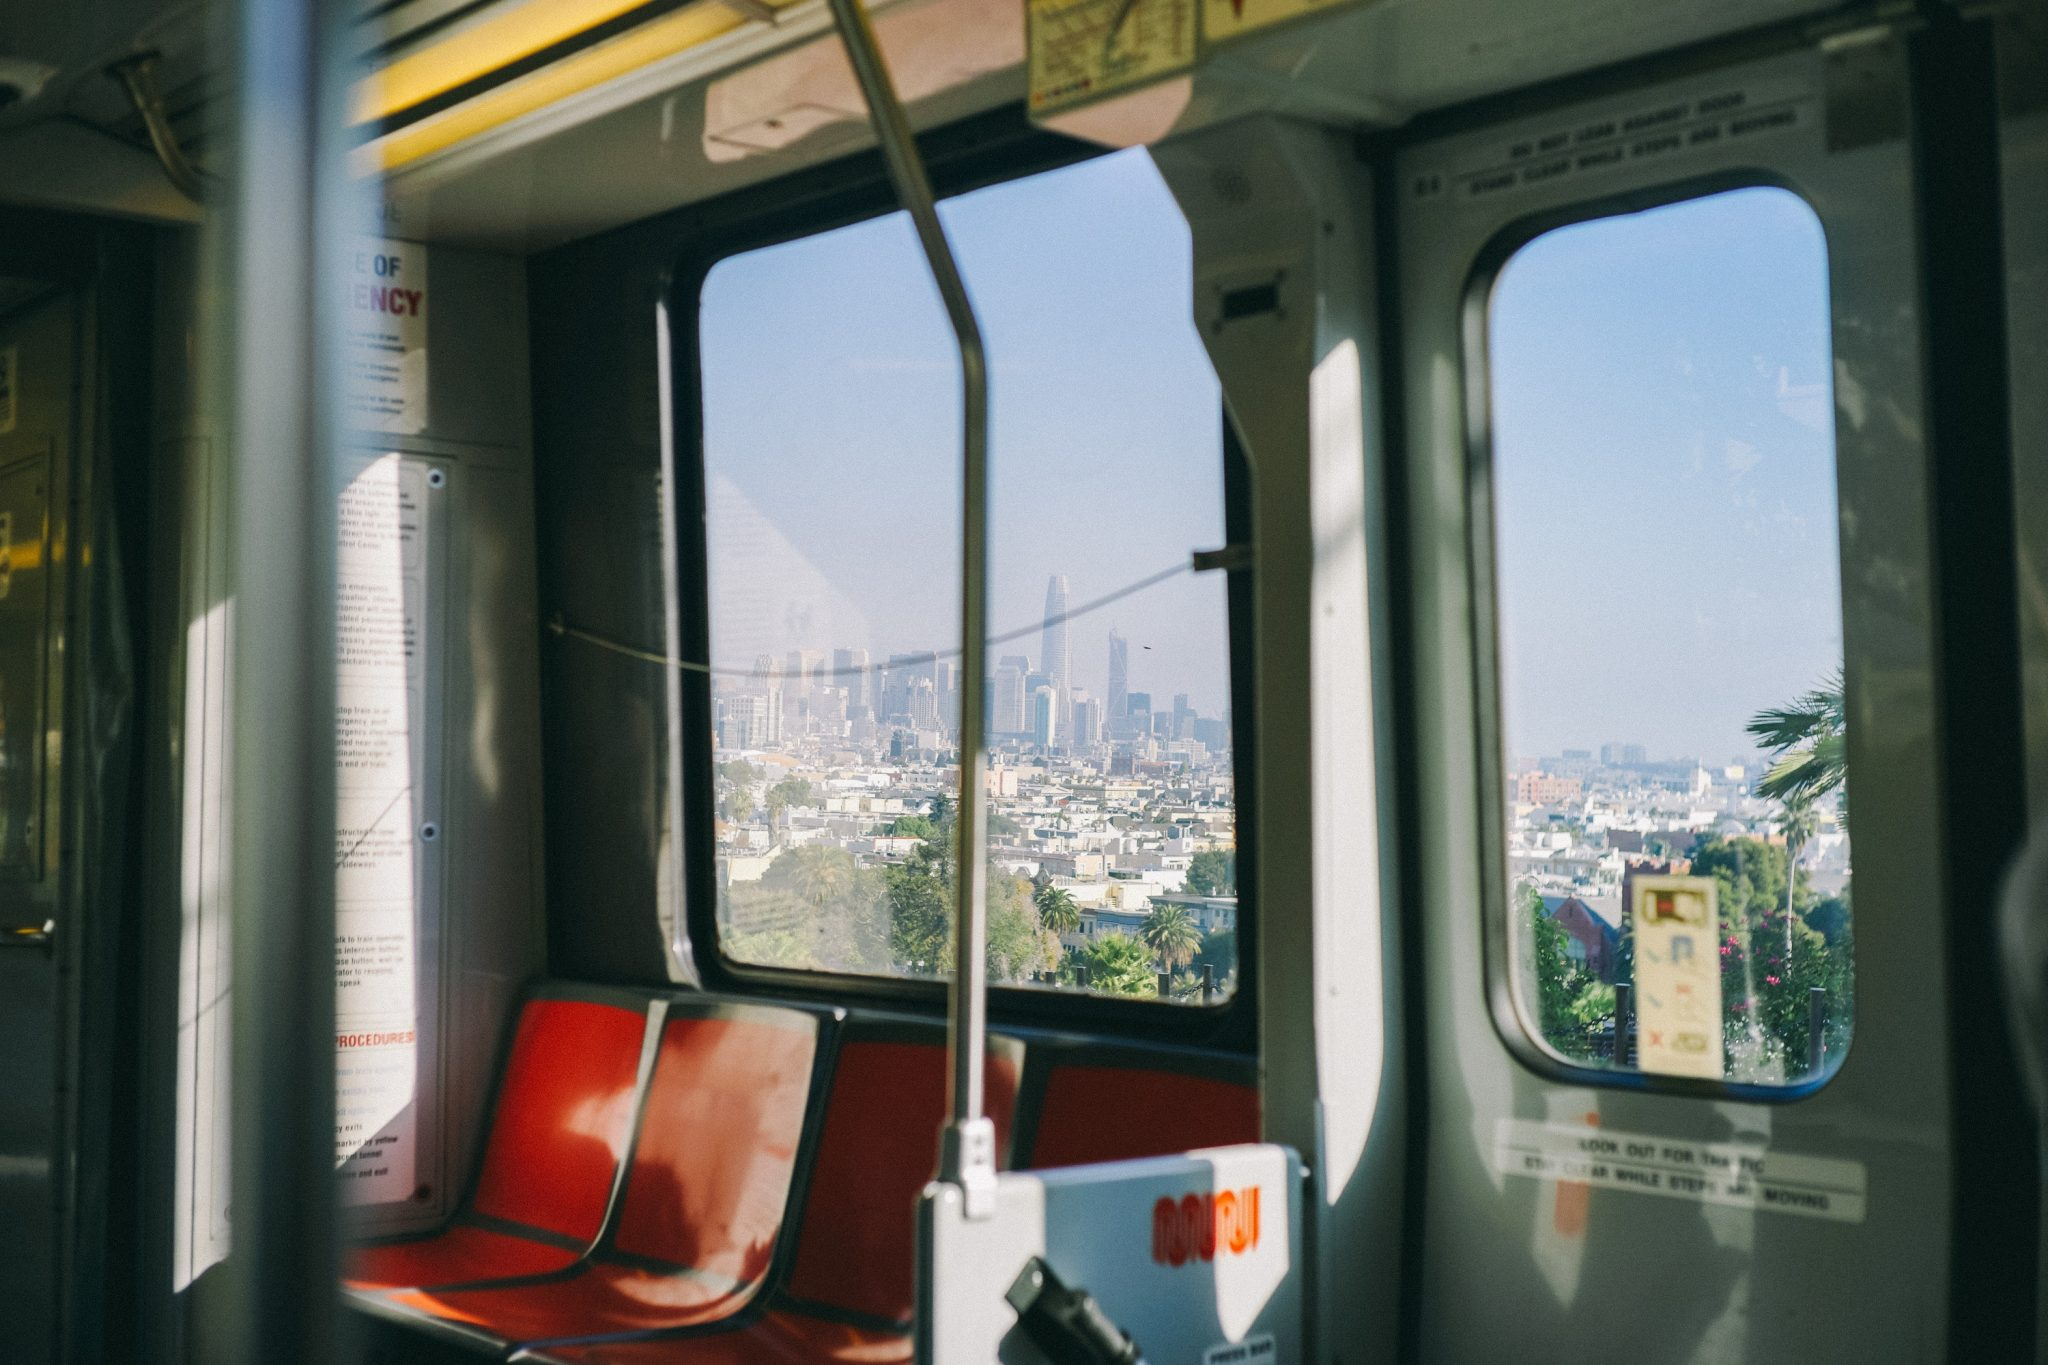 Using the BART from the airports to San Francisco or Oakland